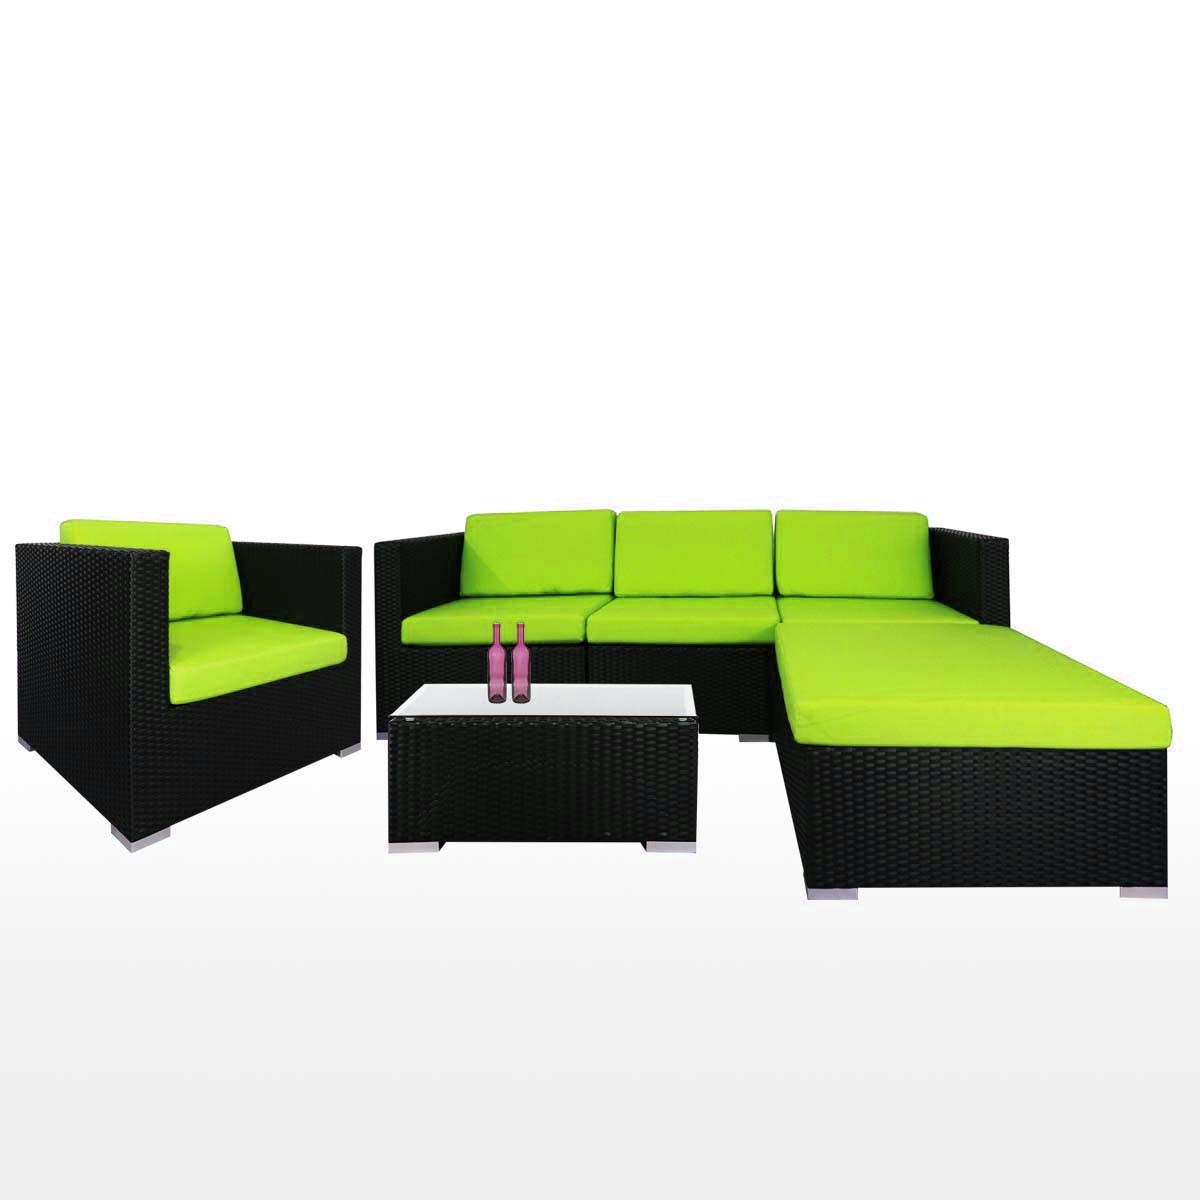 Summer Outdoor Modular Sofa Set Ii Green Cushions 2 Year Warranty Furniture Home D Cor